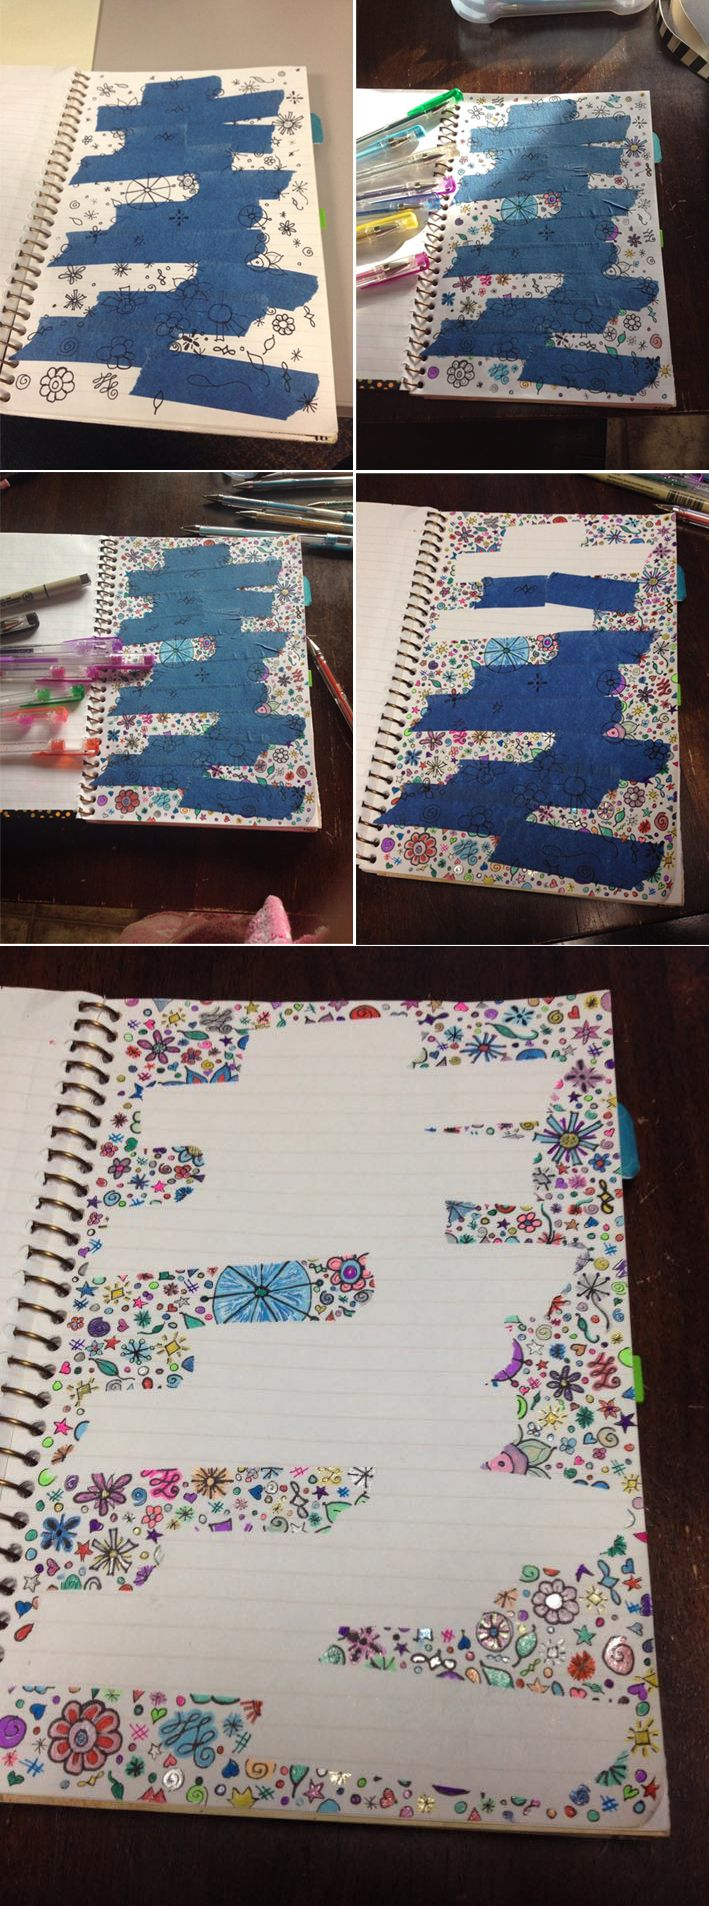 Awesome smashbook page idea by Carey Luker Thomas on the SMASH*aholics facebook page ..